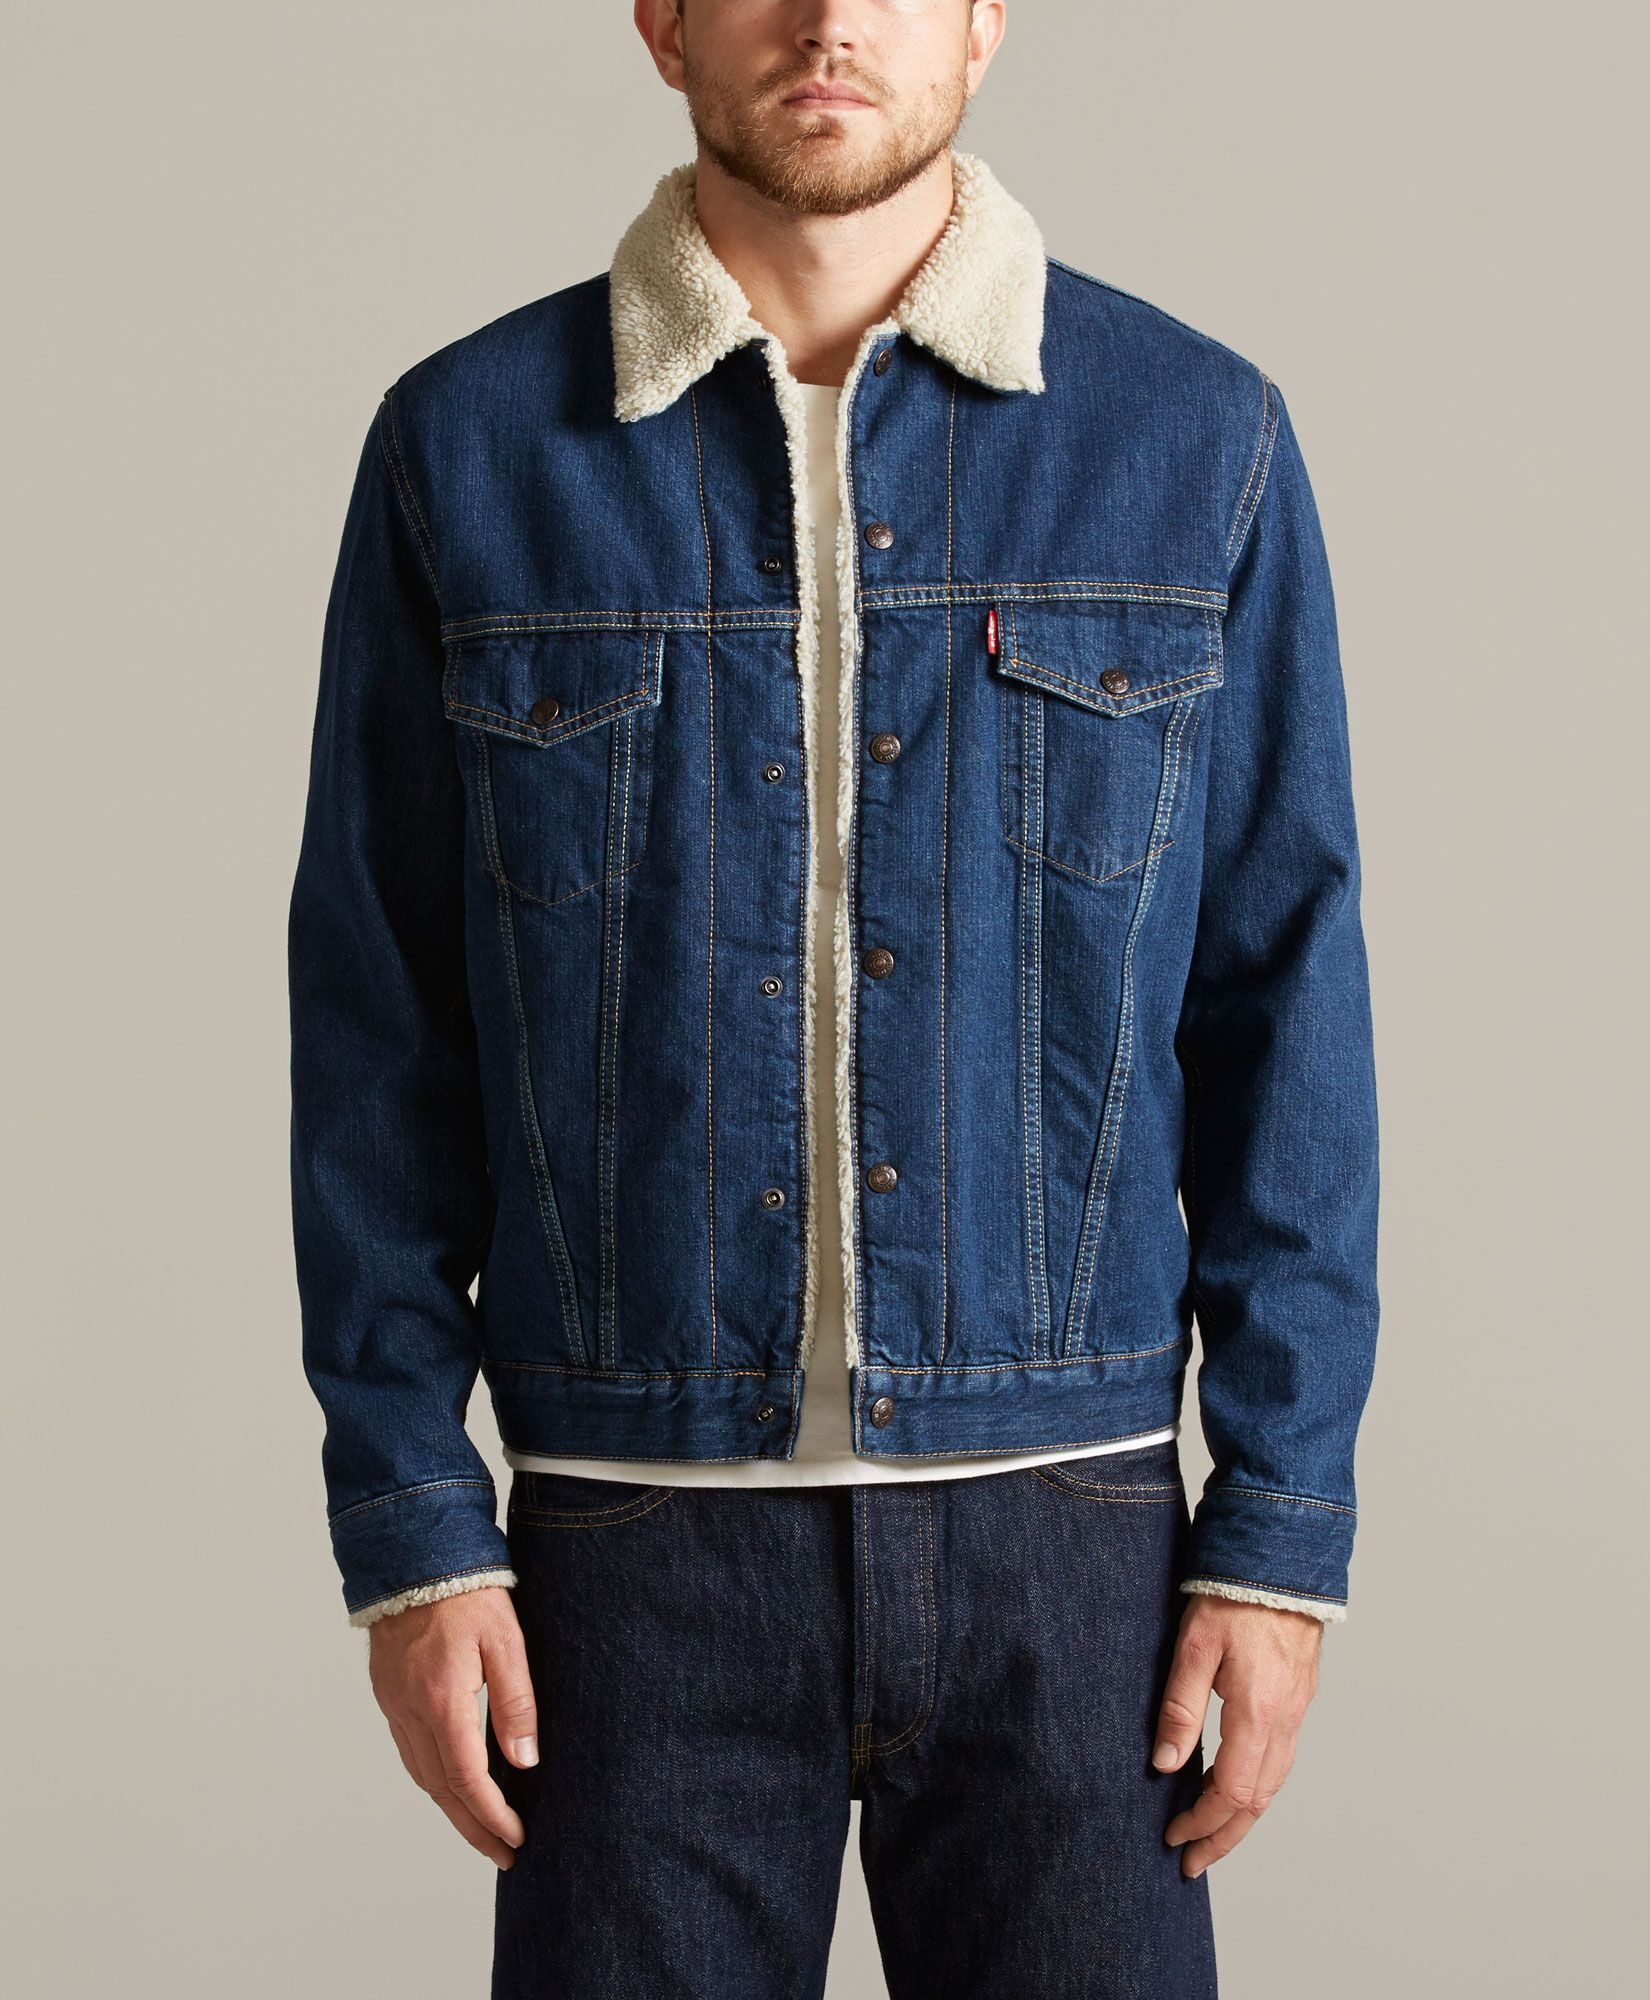 [ ! ] Men's Levi's Sherpa Lined Cloth Trucker Jacket  | 7 Ways On How To Prepare For Men's Levi's Sherpa Lined Cloth Trucker Jacket